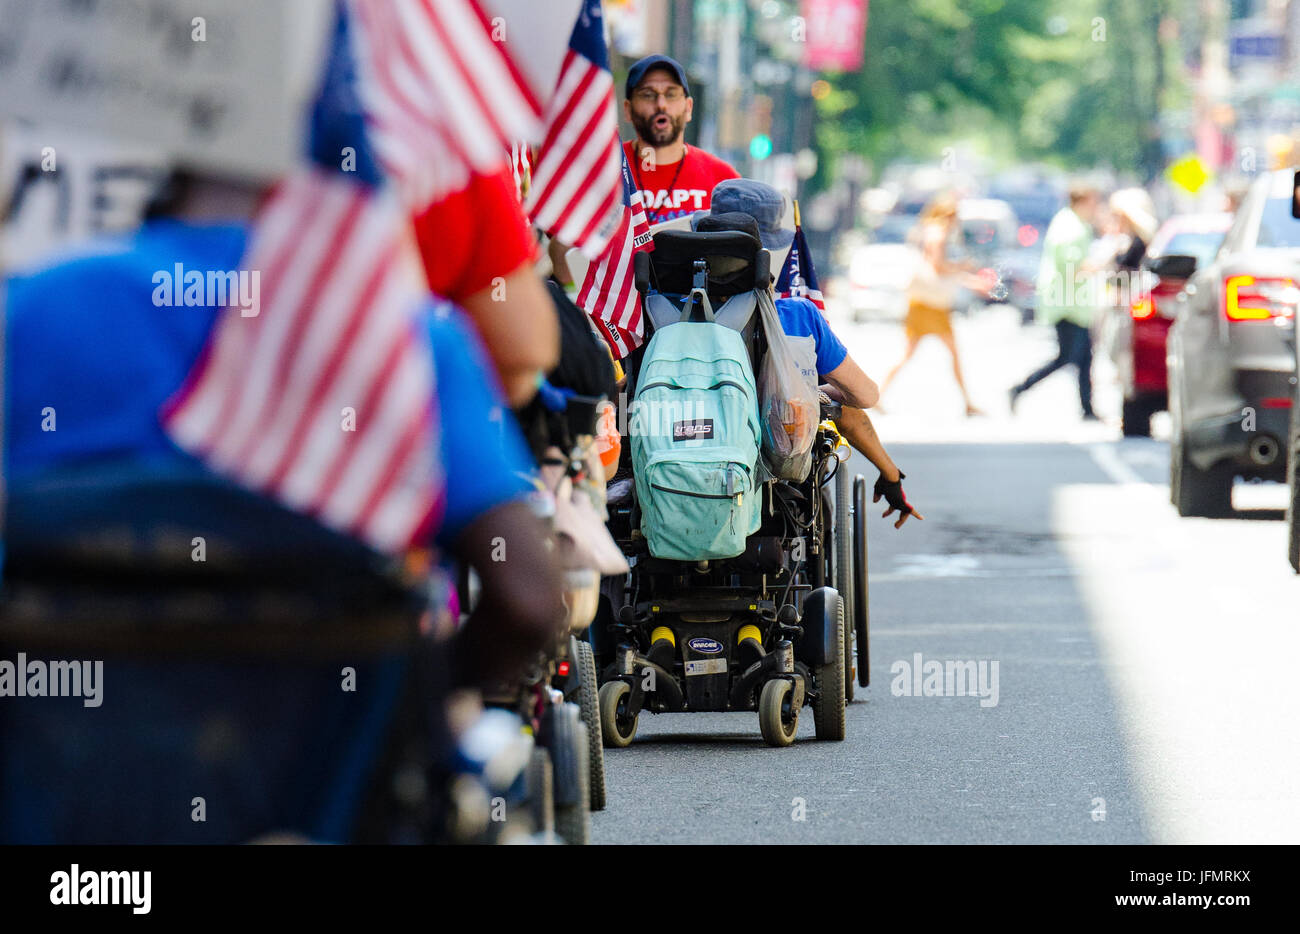 PA ADAPT members march in wheelchairs to the Philadelphia office of Republican Senator, Pat Toomey. - Stock Image